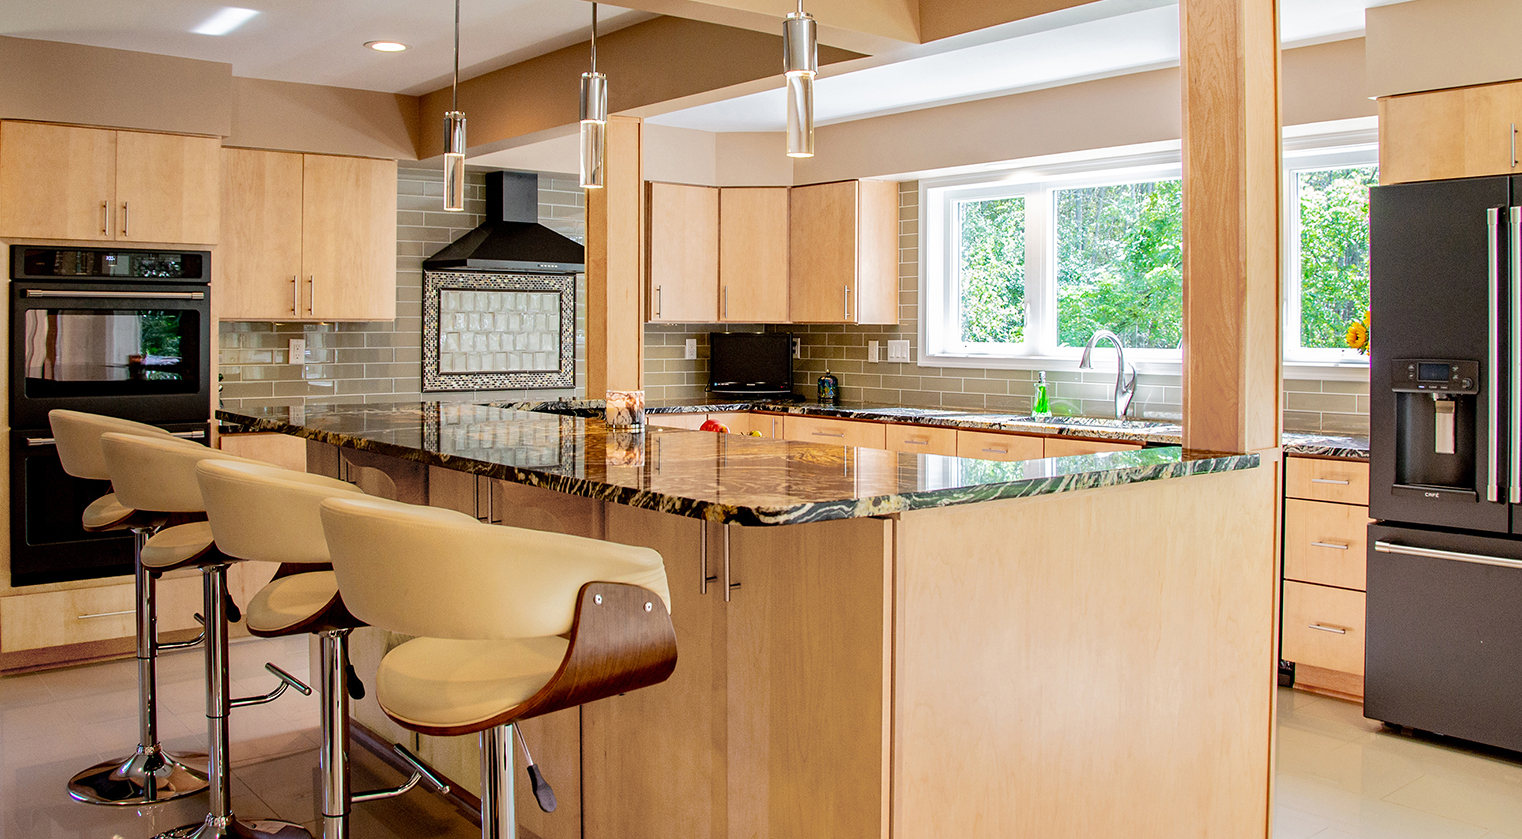 The Kitchen design expanded the room for entertaining. The owner also wanted large windows to bring in more sunlight and a large island with a breakfast bar.